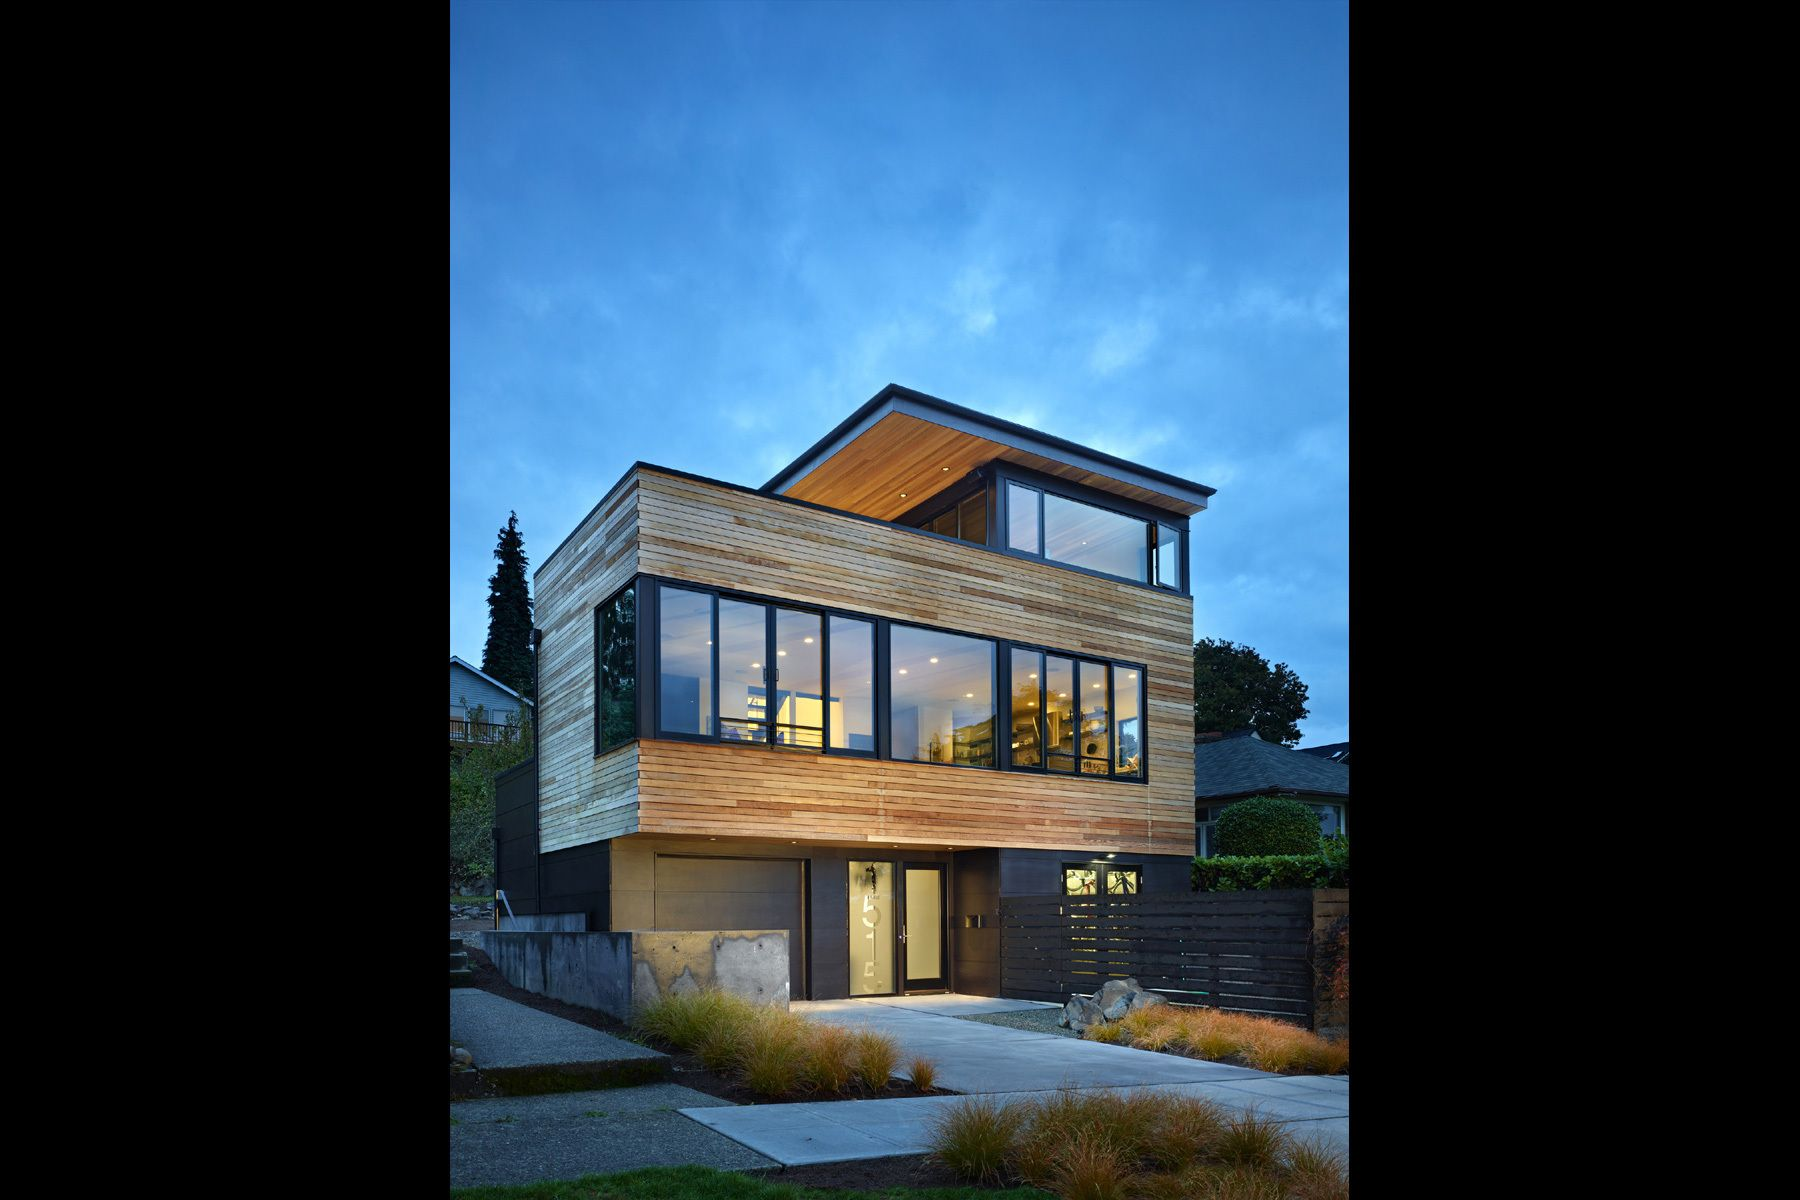 northwest modern home architecture. Unique Architecture Northwest Modern Home Architecture Classic  Architecture Cycle House   Throughout Northwest Modern Home Architecture